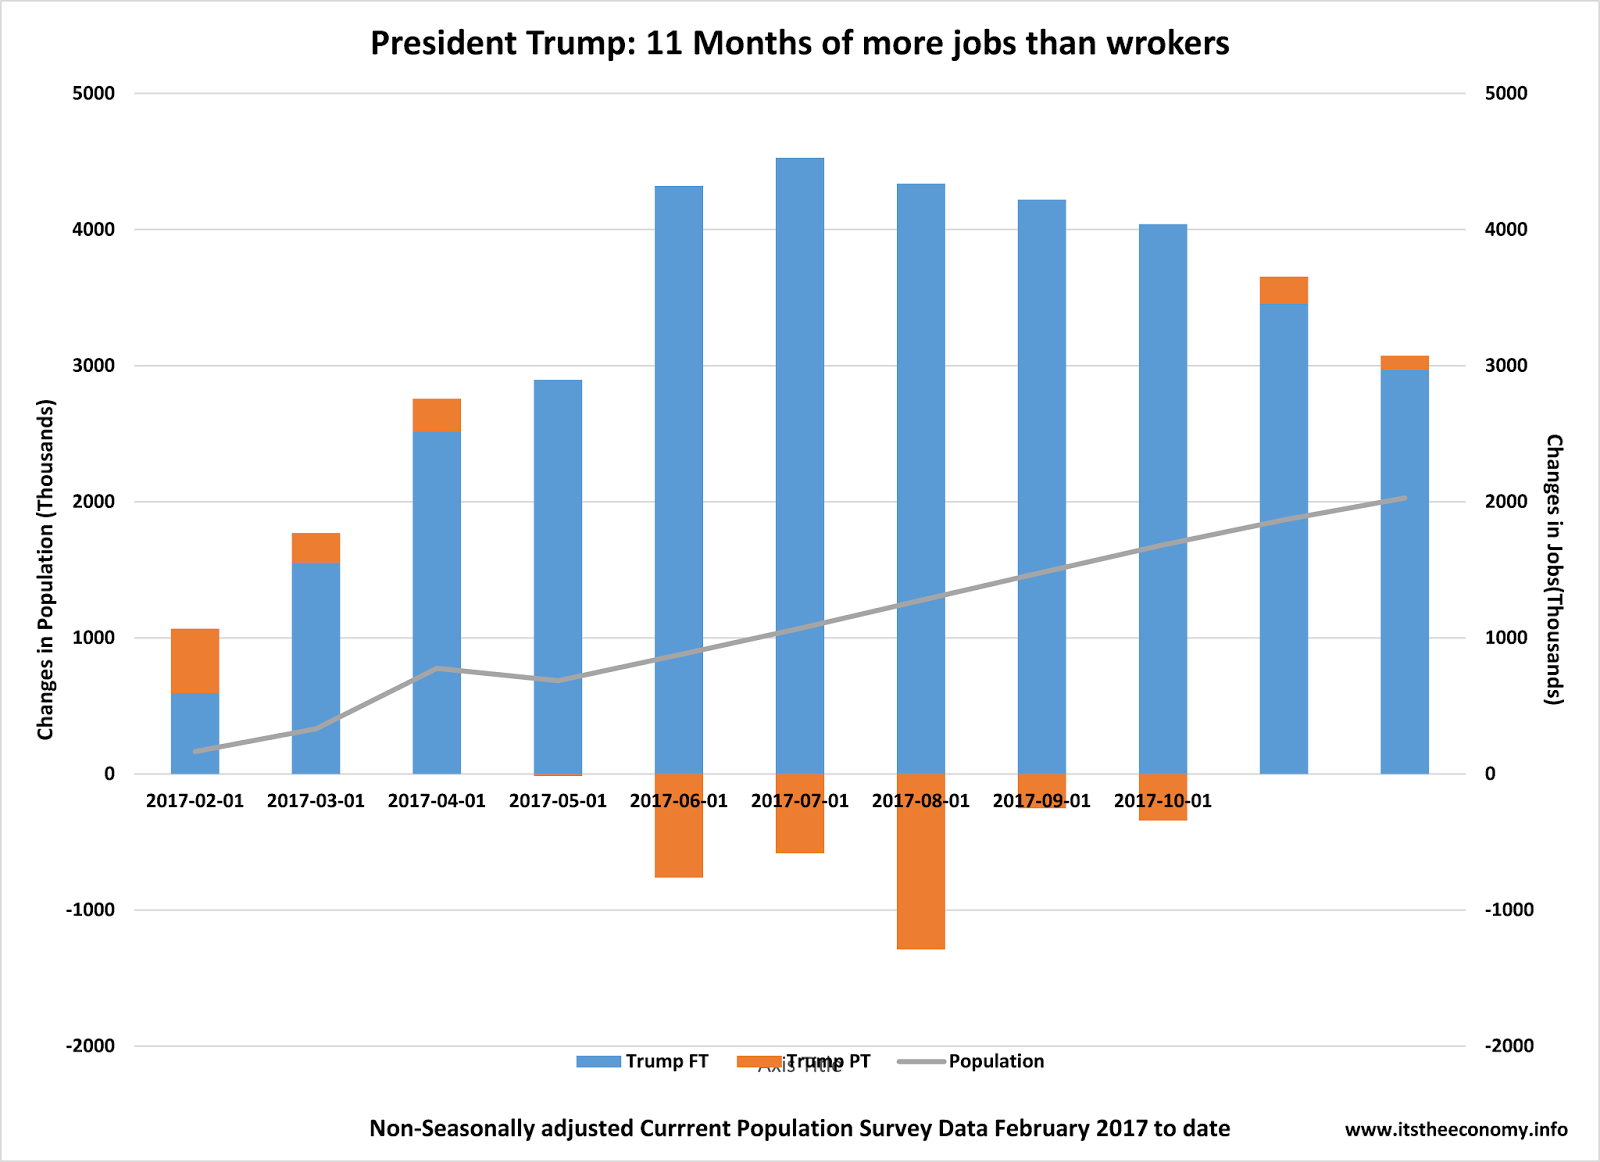 president trump has added more jobs than workers since his first month in office the january jobs report data is collected through january 12th so - Electronics Sales Jobs